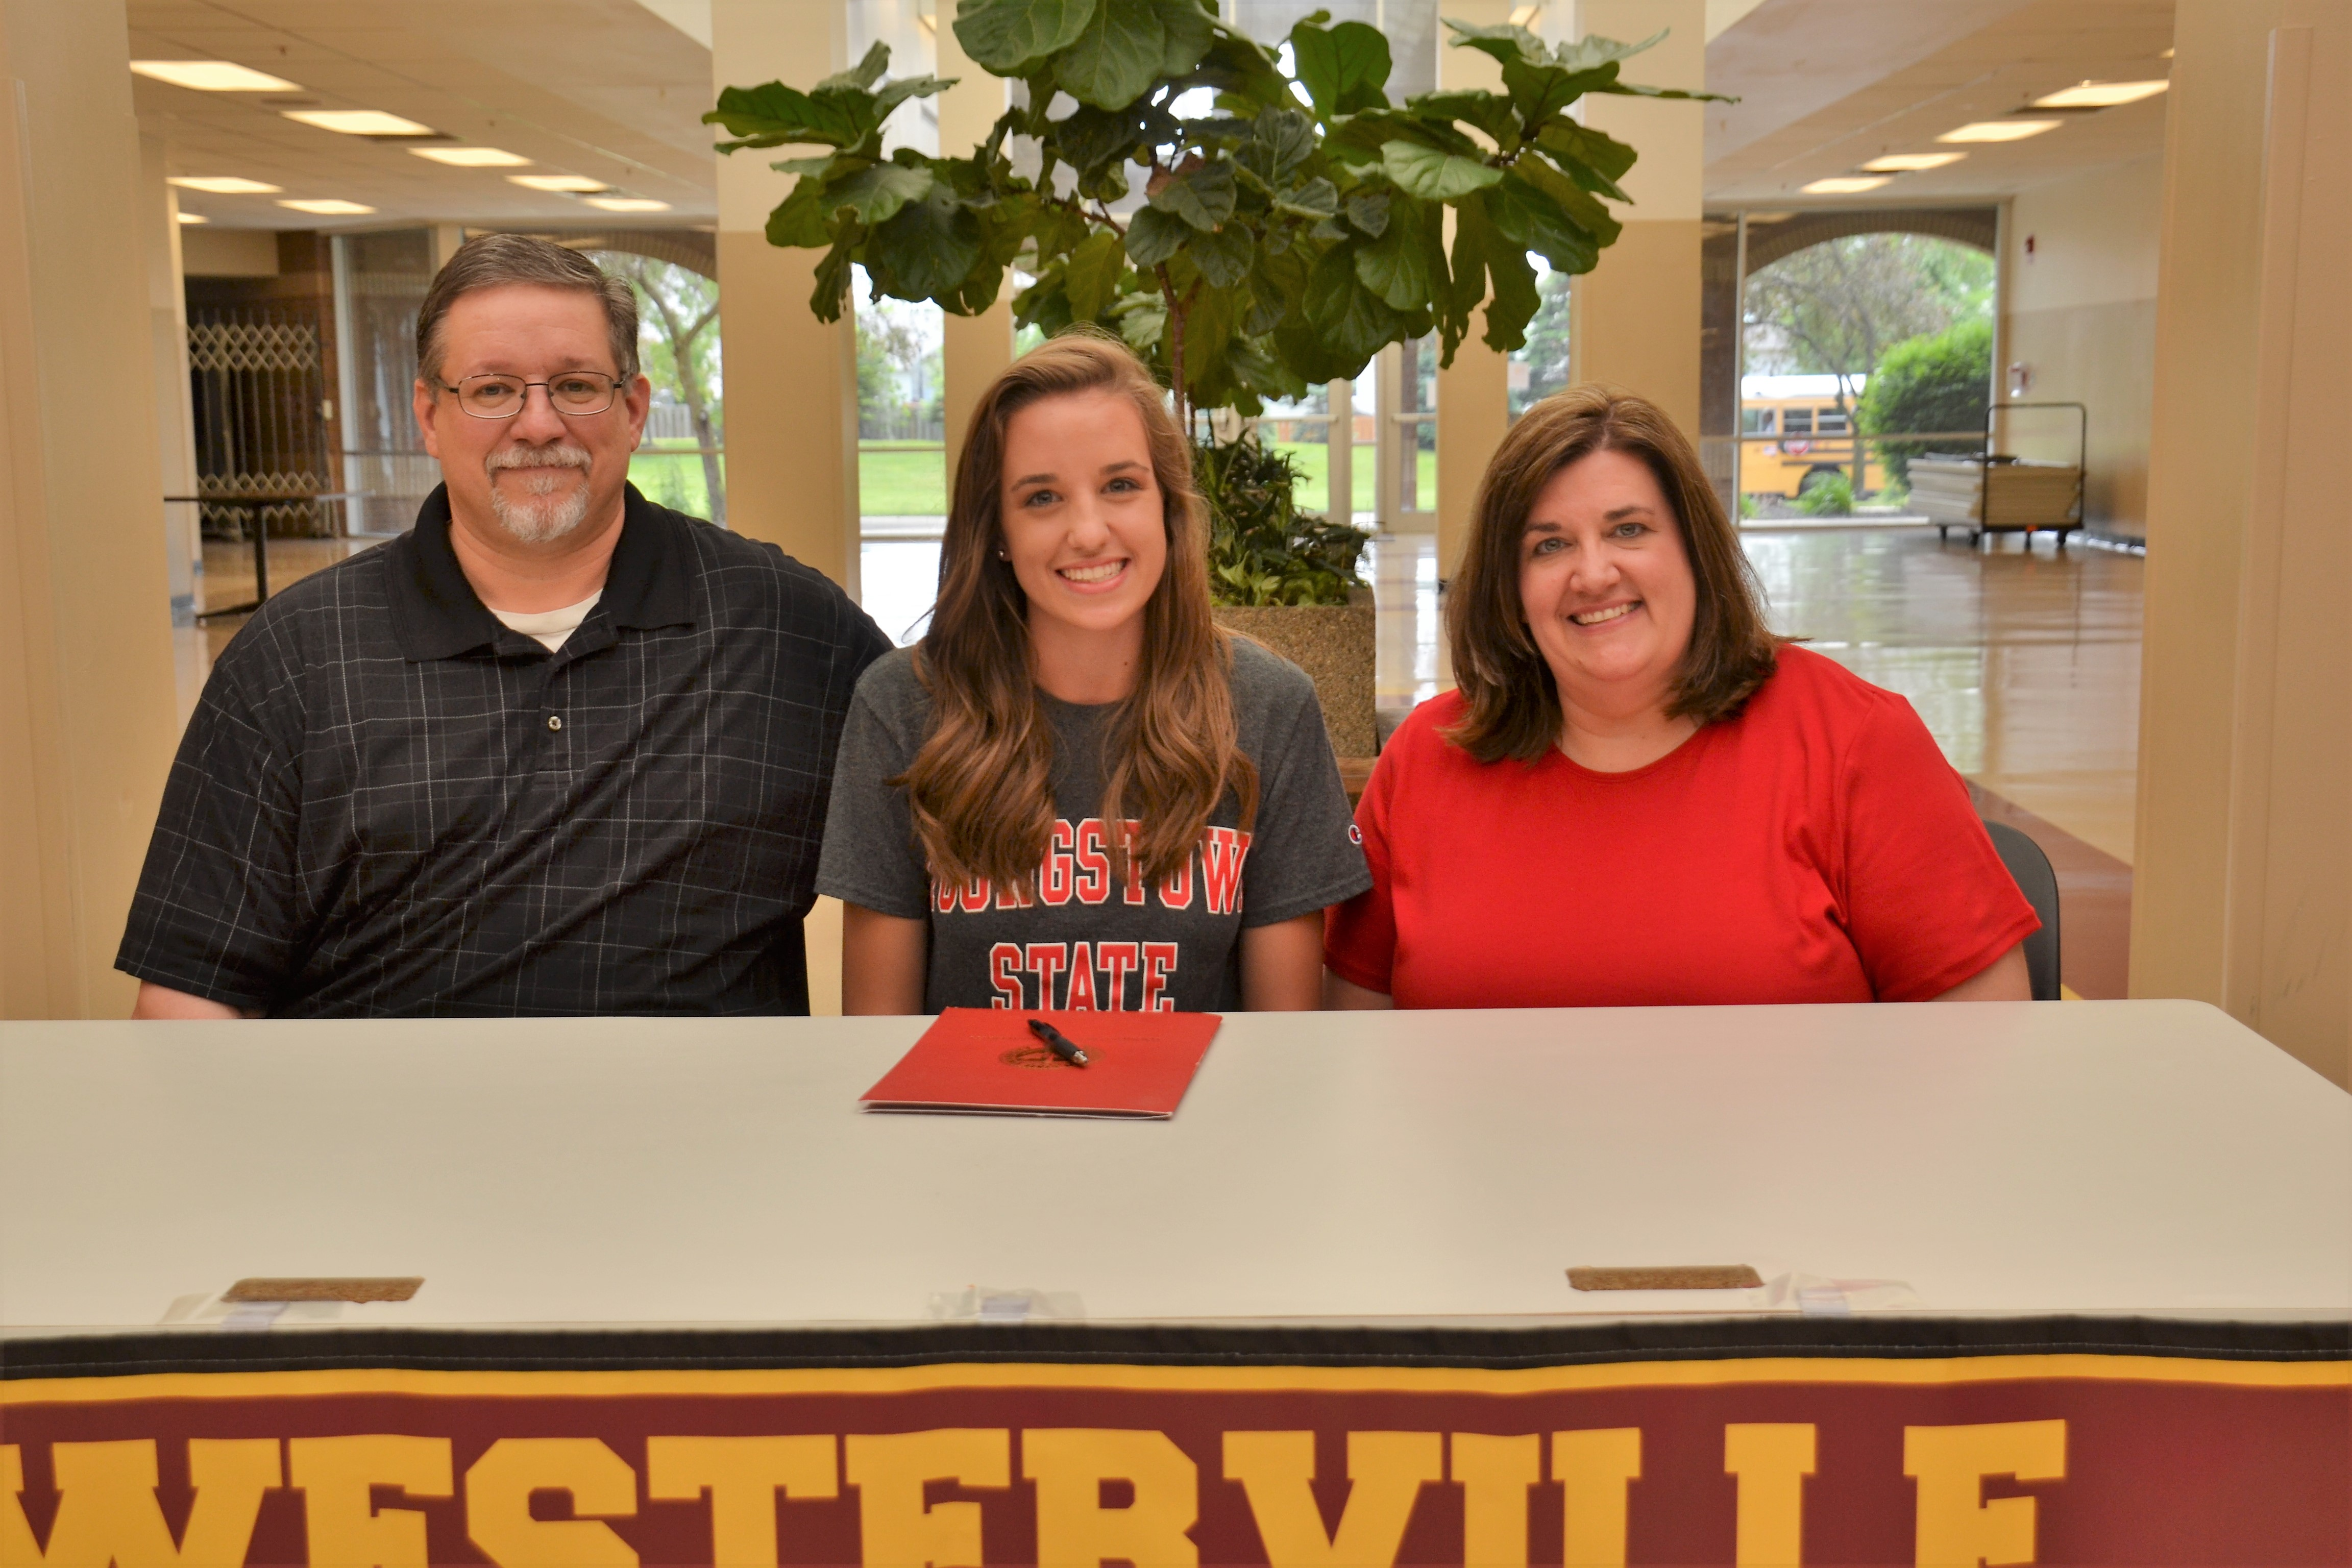 Abbey Chaffin pictured with her parents.